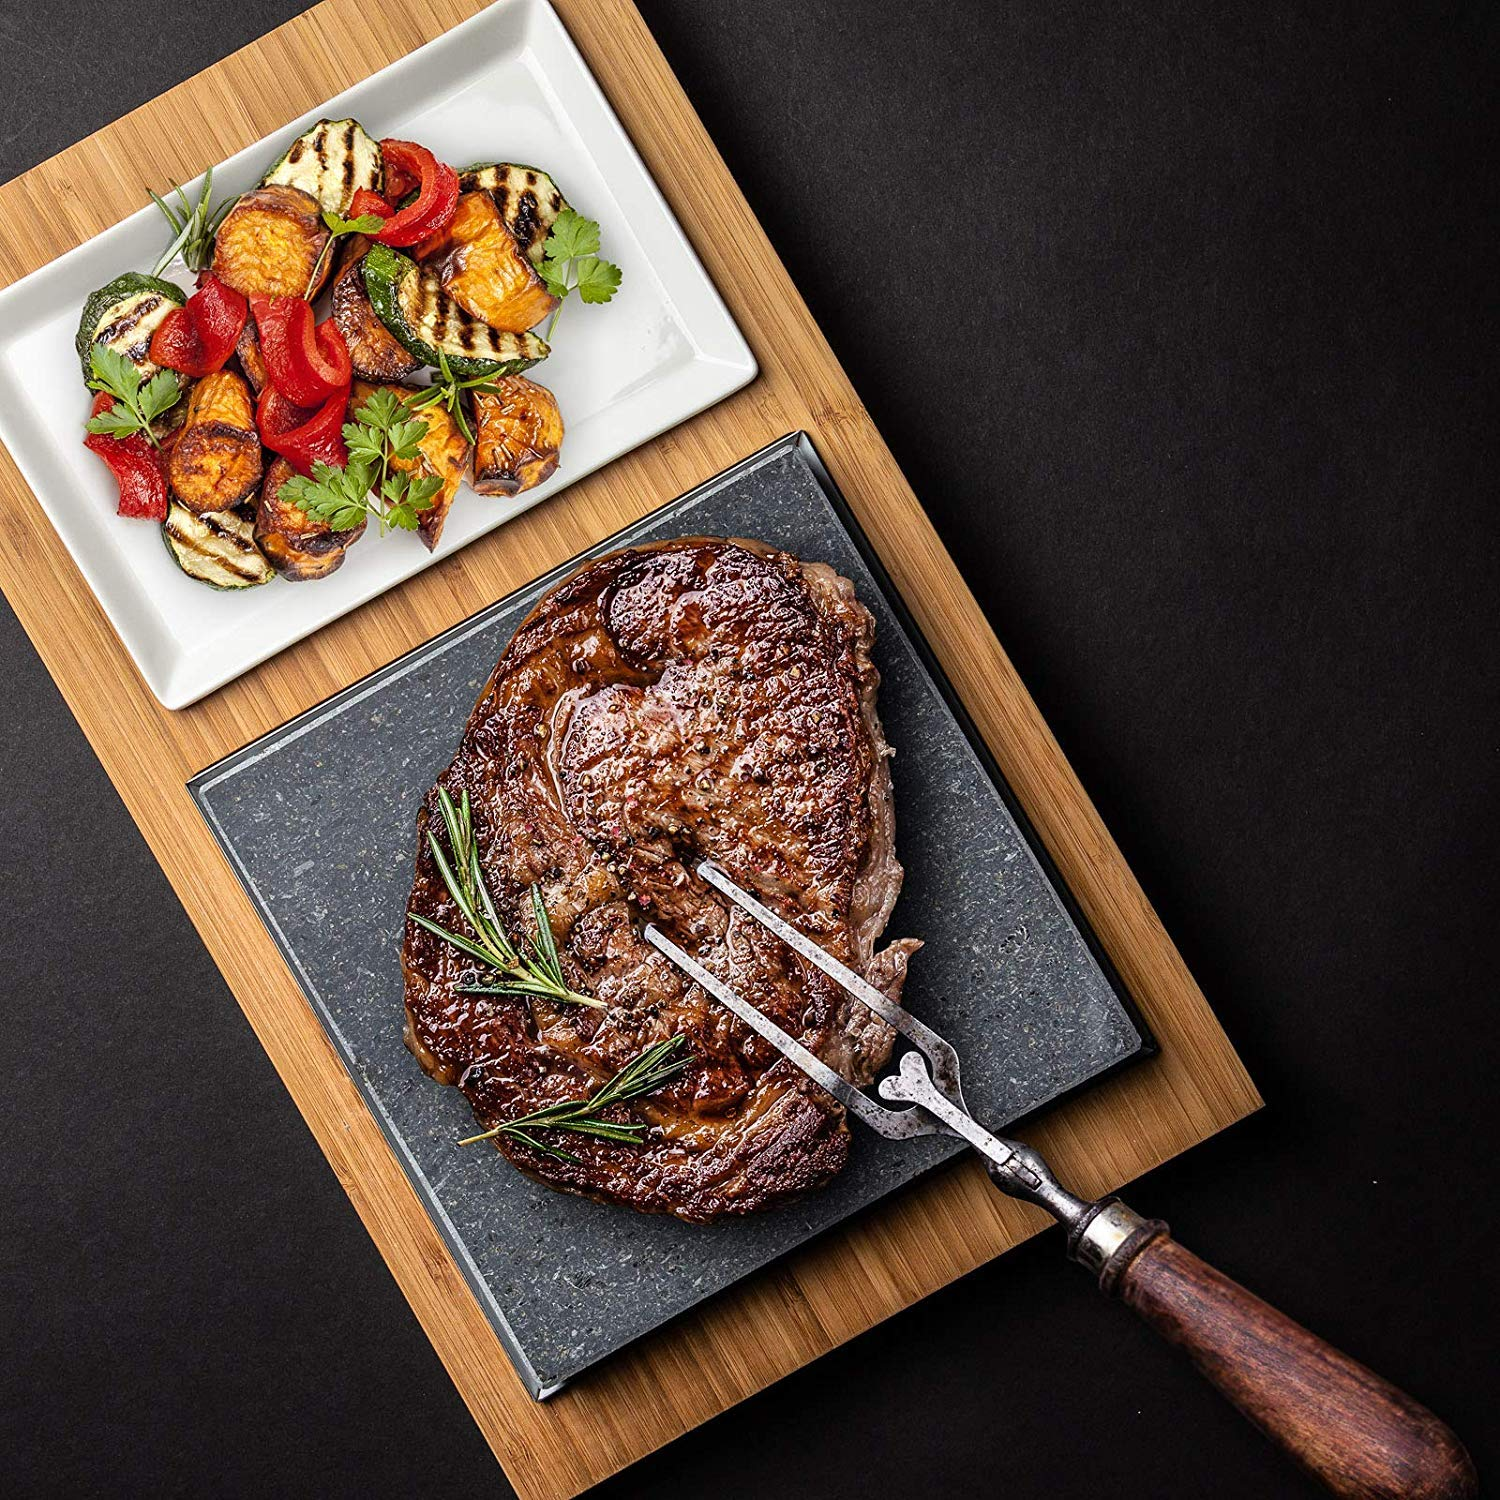 LAVAROCK Cooking Stone - Professional Lava Rock Serving Platter Set | Grill Like a Master Chef on a Cold Lava Stone - 8 Inch x 8 Inch with Bamboo Board and a Ceramic Tray.